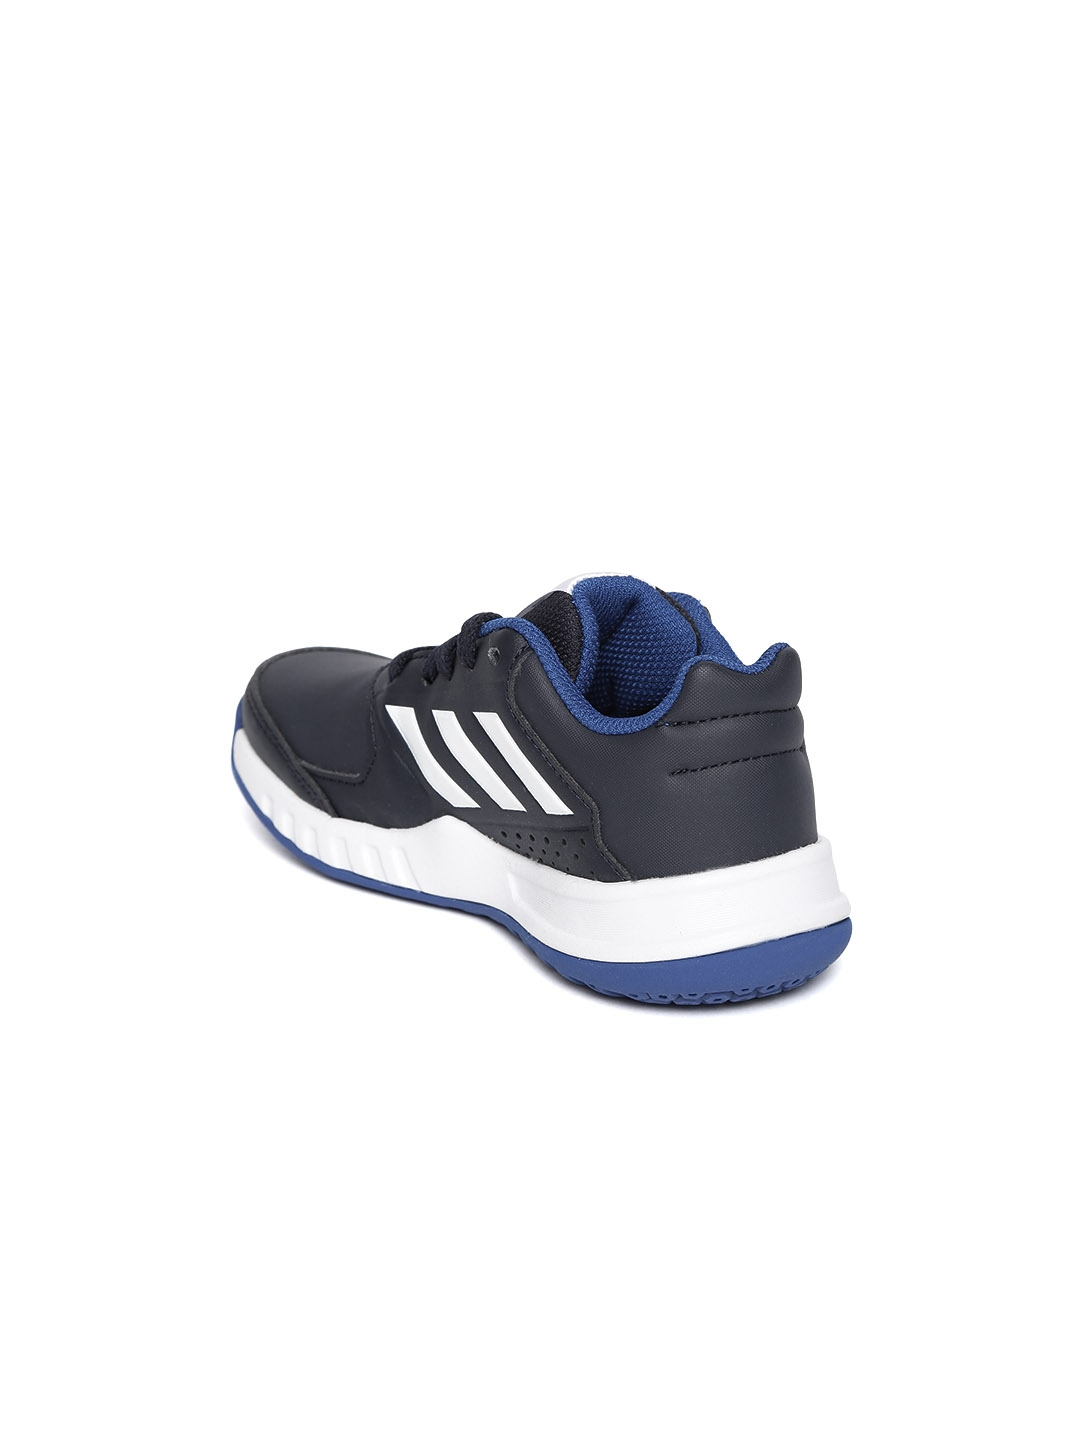 on sale 931df f7621 Adidas Kids Navy Blue FORTAGYM Sports Shoes